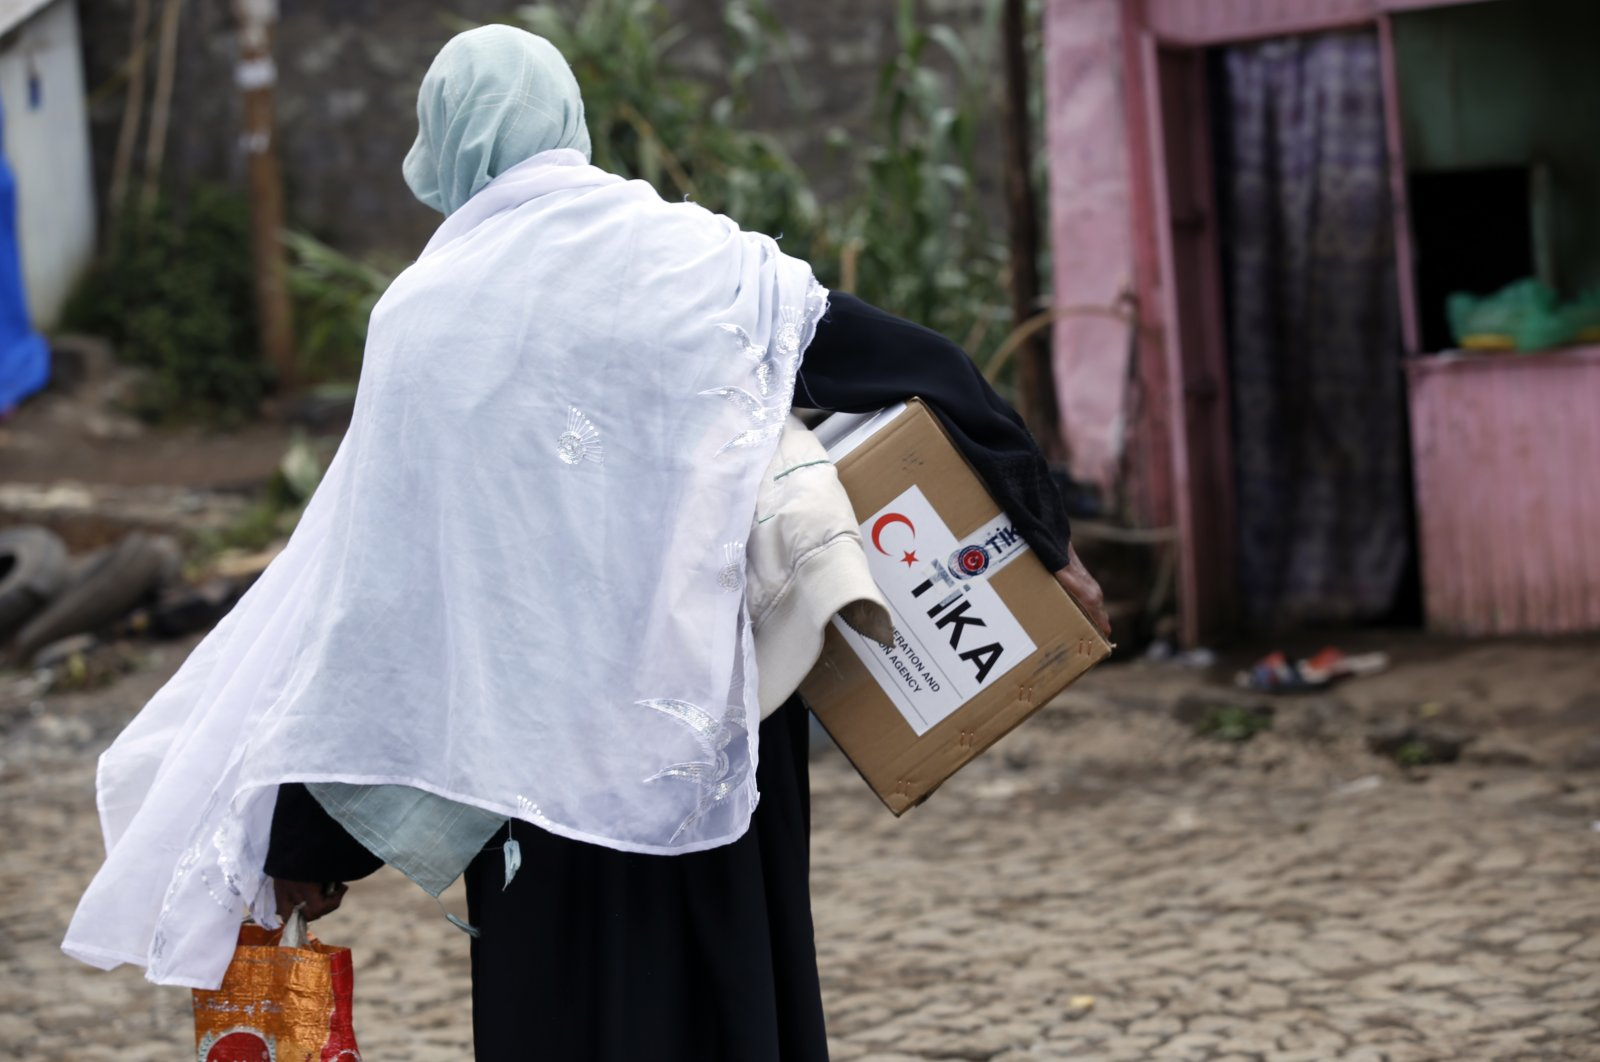 An Ethiopian woman carries an aid package delivered by TIKA in Addis Ababa, Ethiopia, April 29, 2021. (AA)